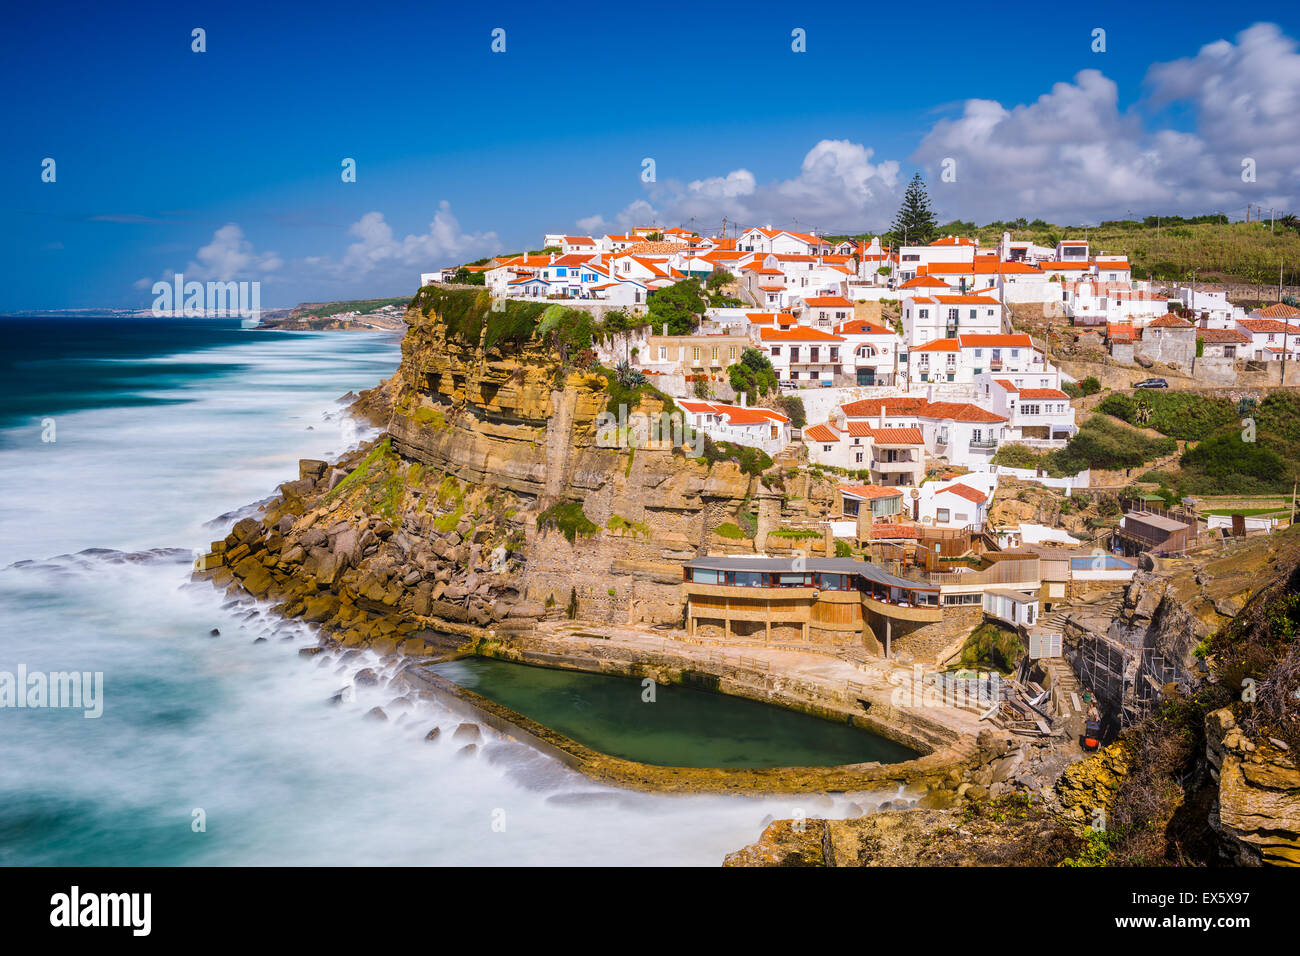 Azenhas do Mar, Portugal seaside town. - Stock Image